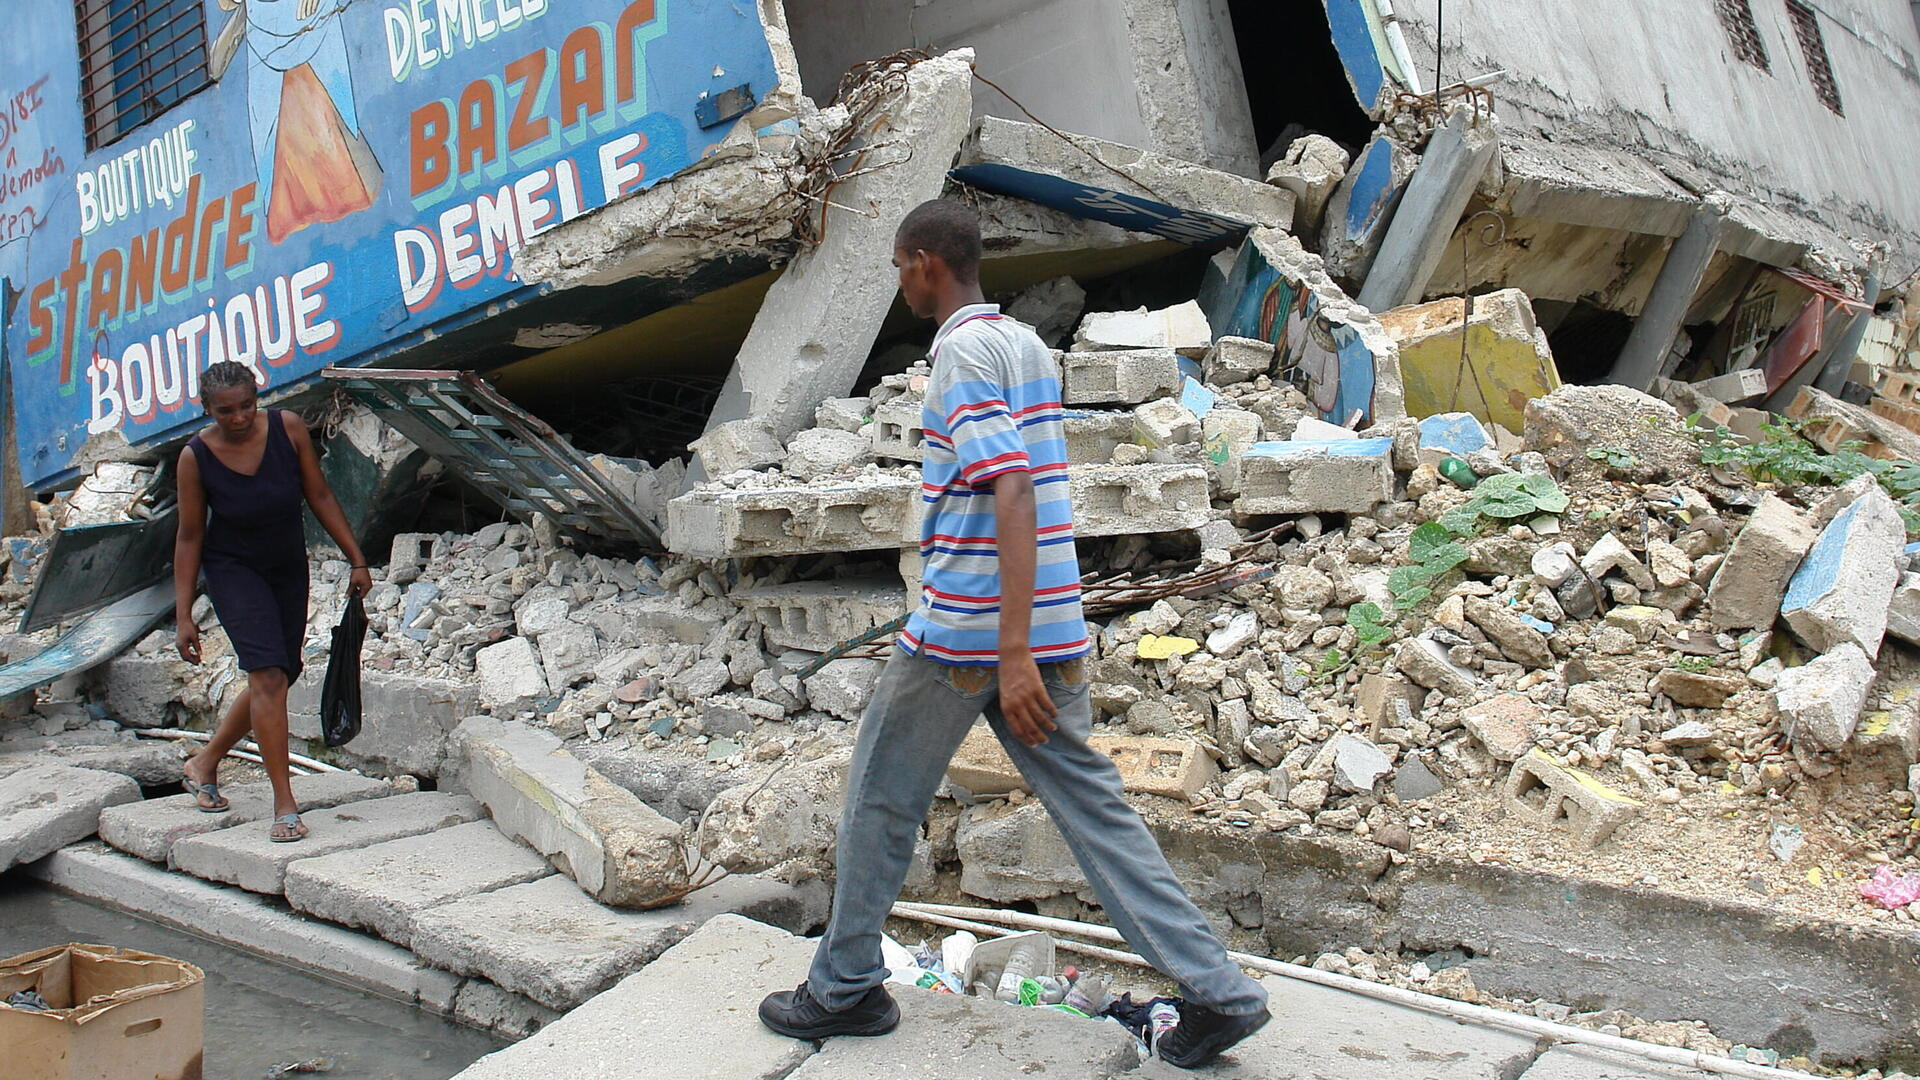 A man and woman walk gingerly past the rubble of buildings in Port-au-Prince, Haiti destroyed by the powerful 2010 earthquake.